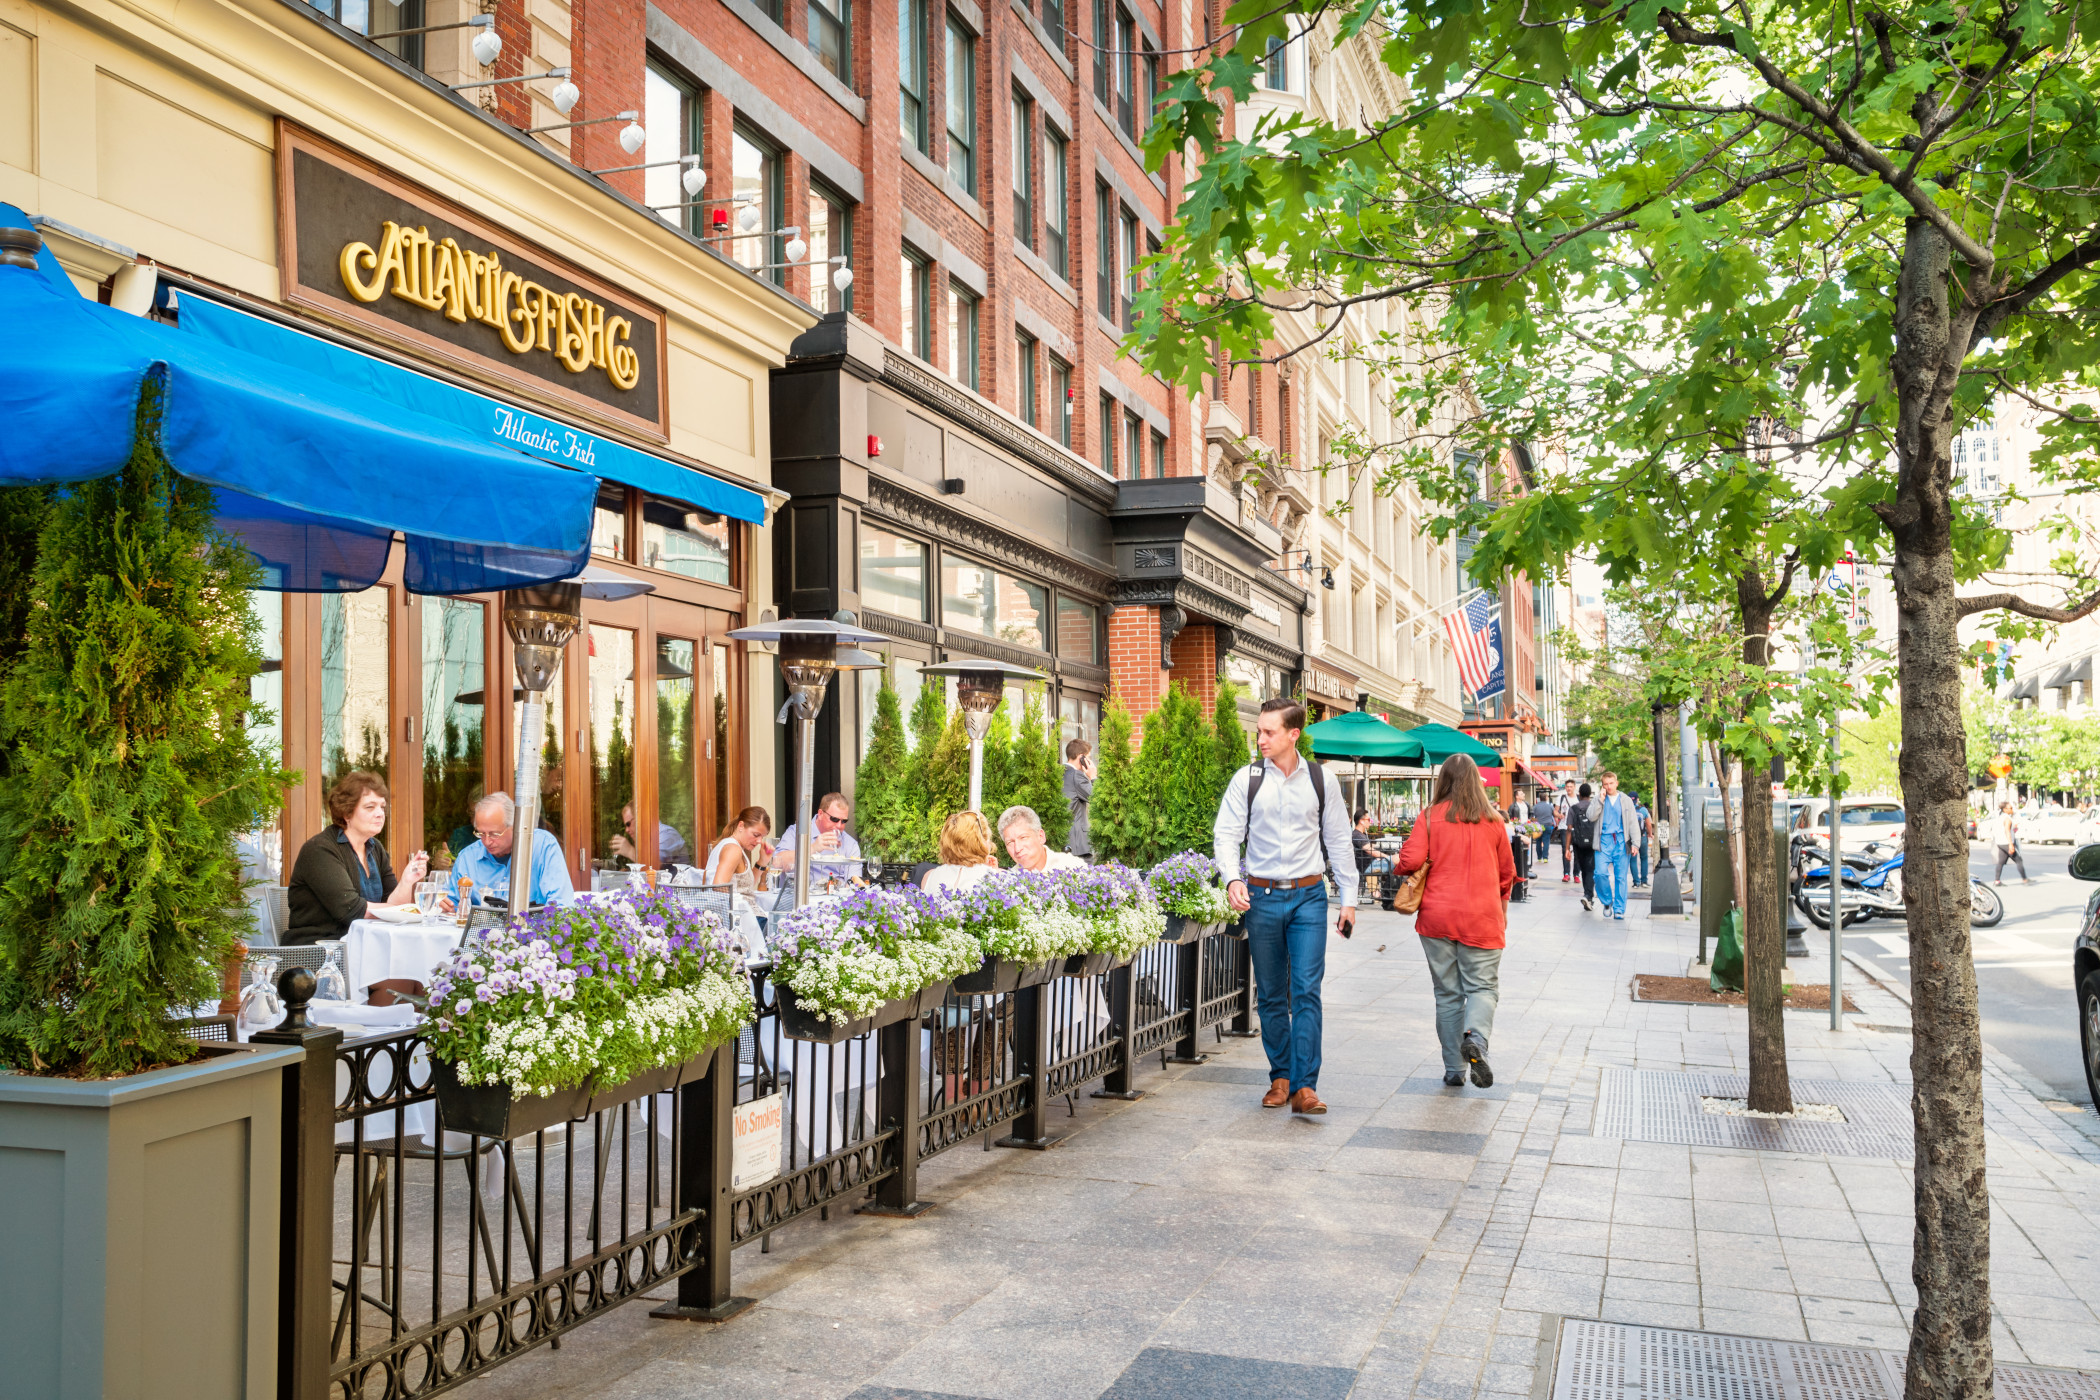 Boston Mayor Martin Walsh said the city's licensing board would lift some restrictions and streamline restaurants' ability to use outdoor space adjacent to their indoor dining rooms. (iStock)